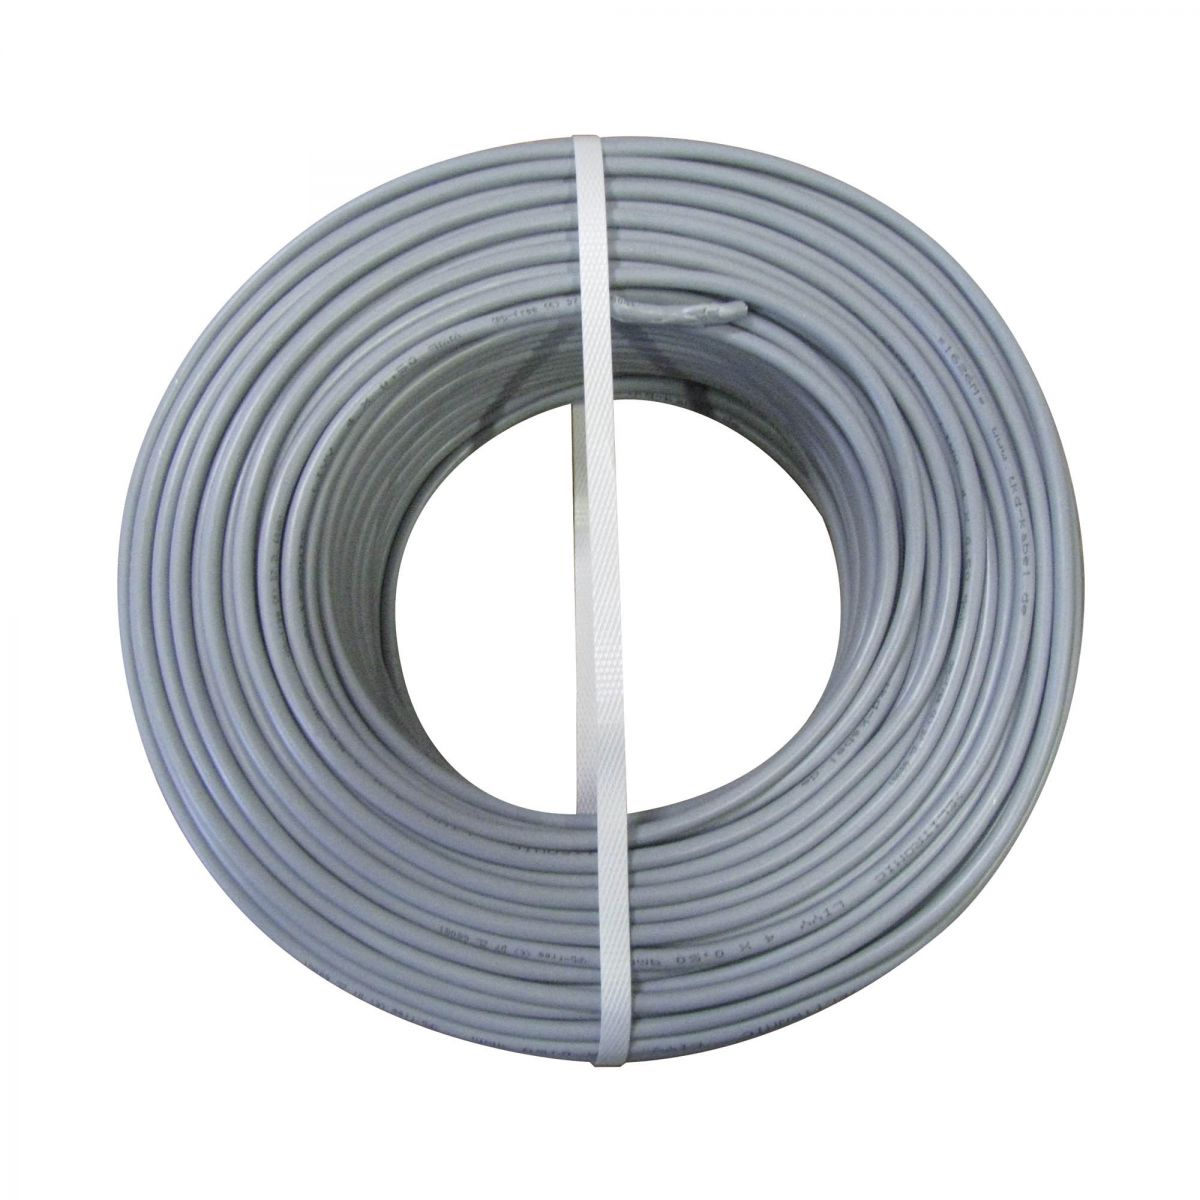 cable 5x034 mm liyy 100 m connection to controlpanel 2340